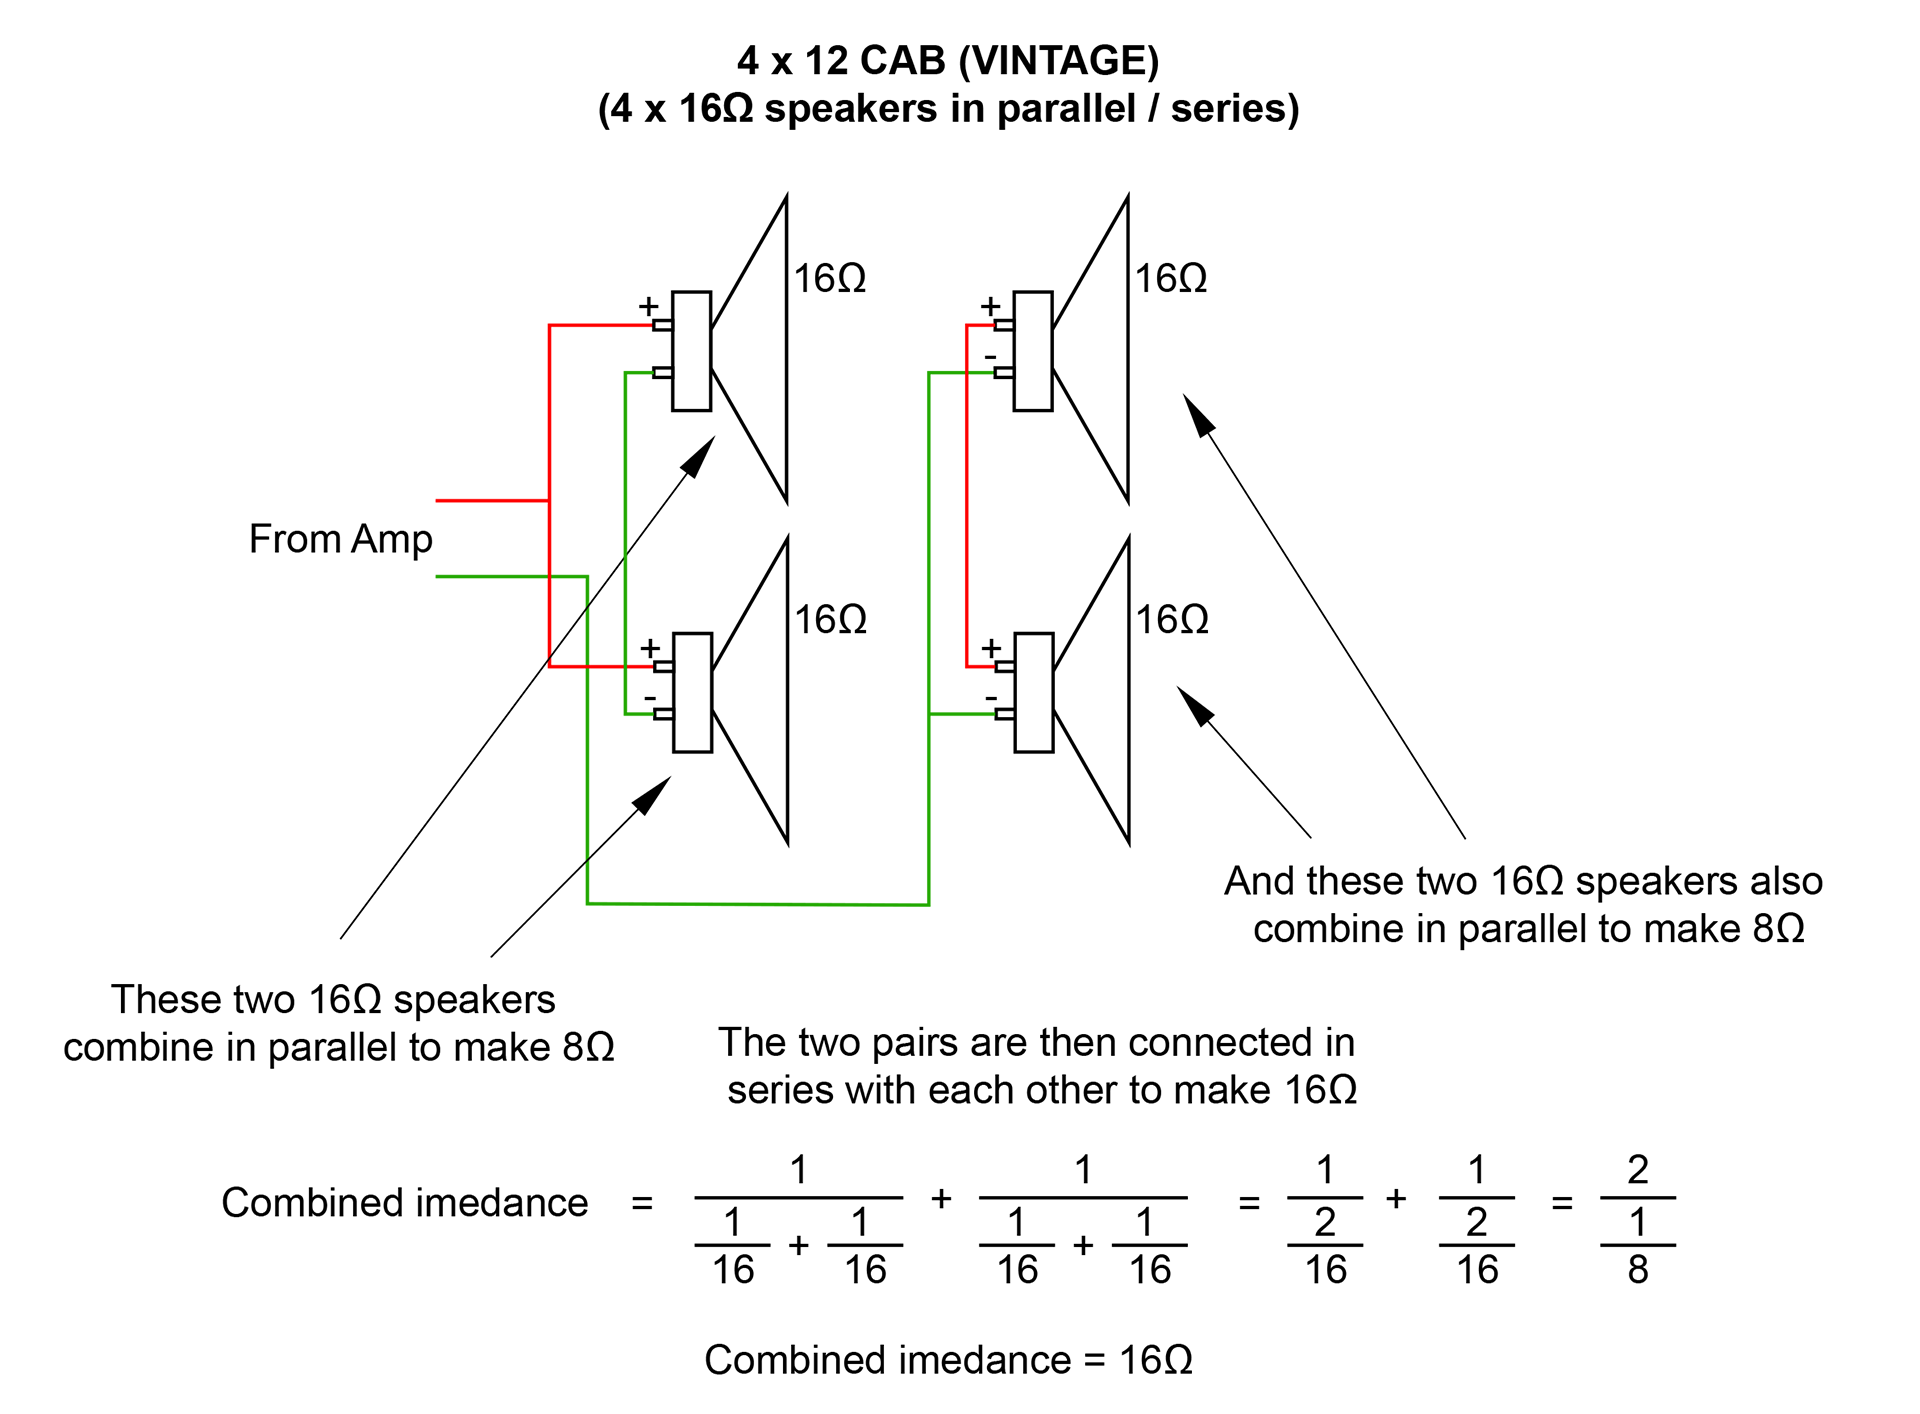 Guitar speaker cab impedance explained - Four speakers wired parallel / series like in a vintage 4 x 12